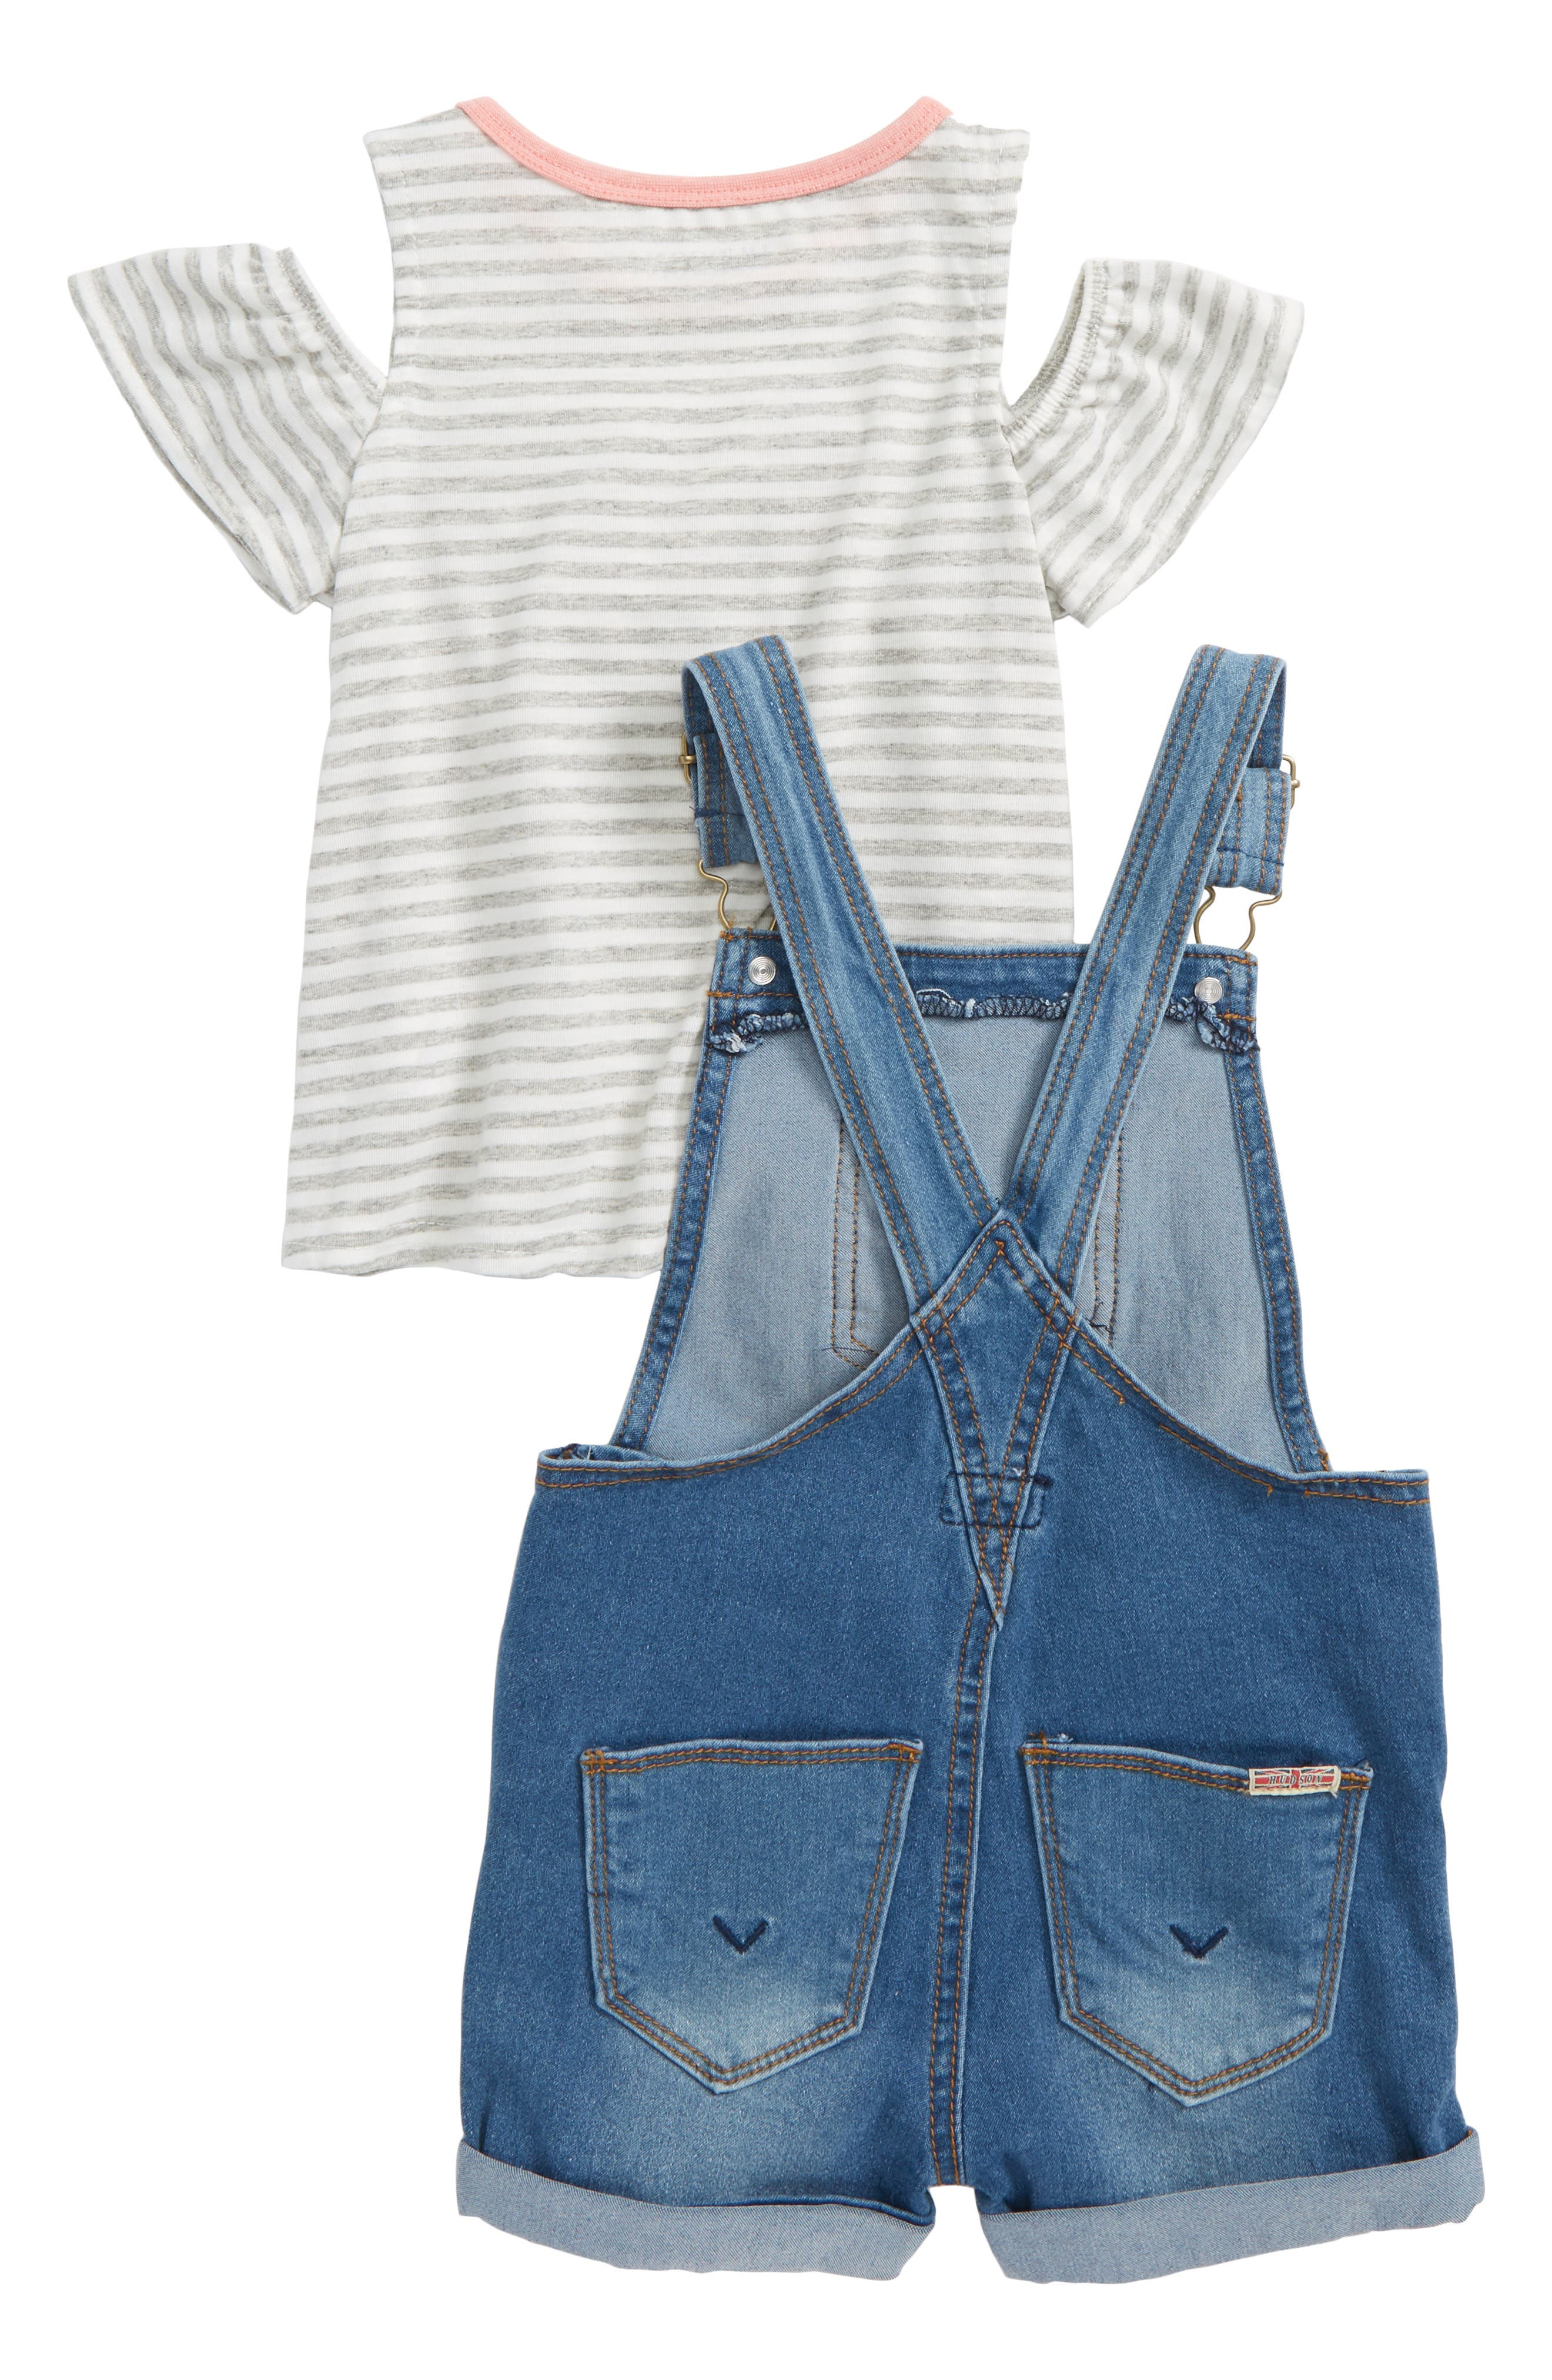 Overalls & Tee Set,                             Alternate thumbnail 2, color,                             Whatever Wash